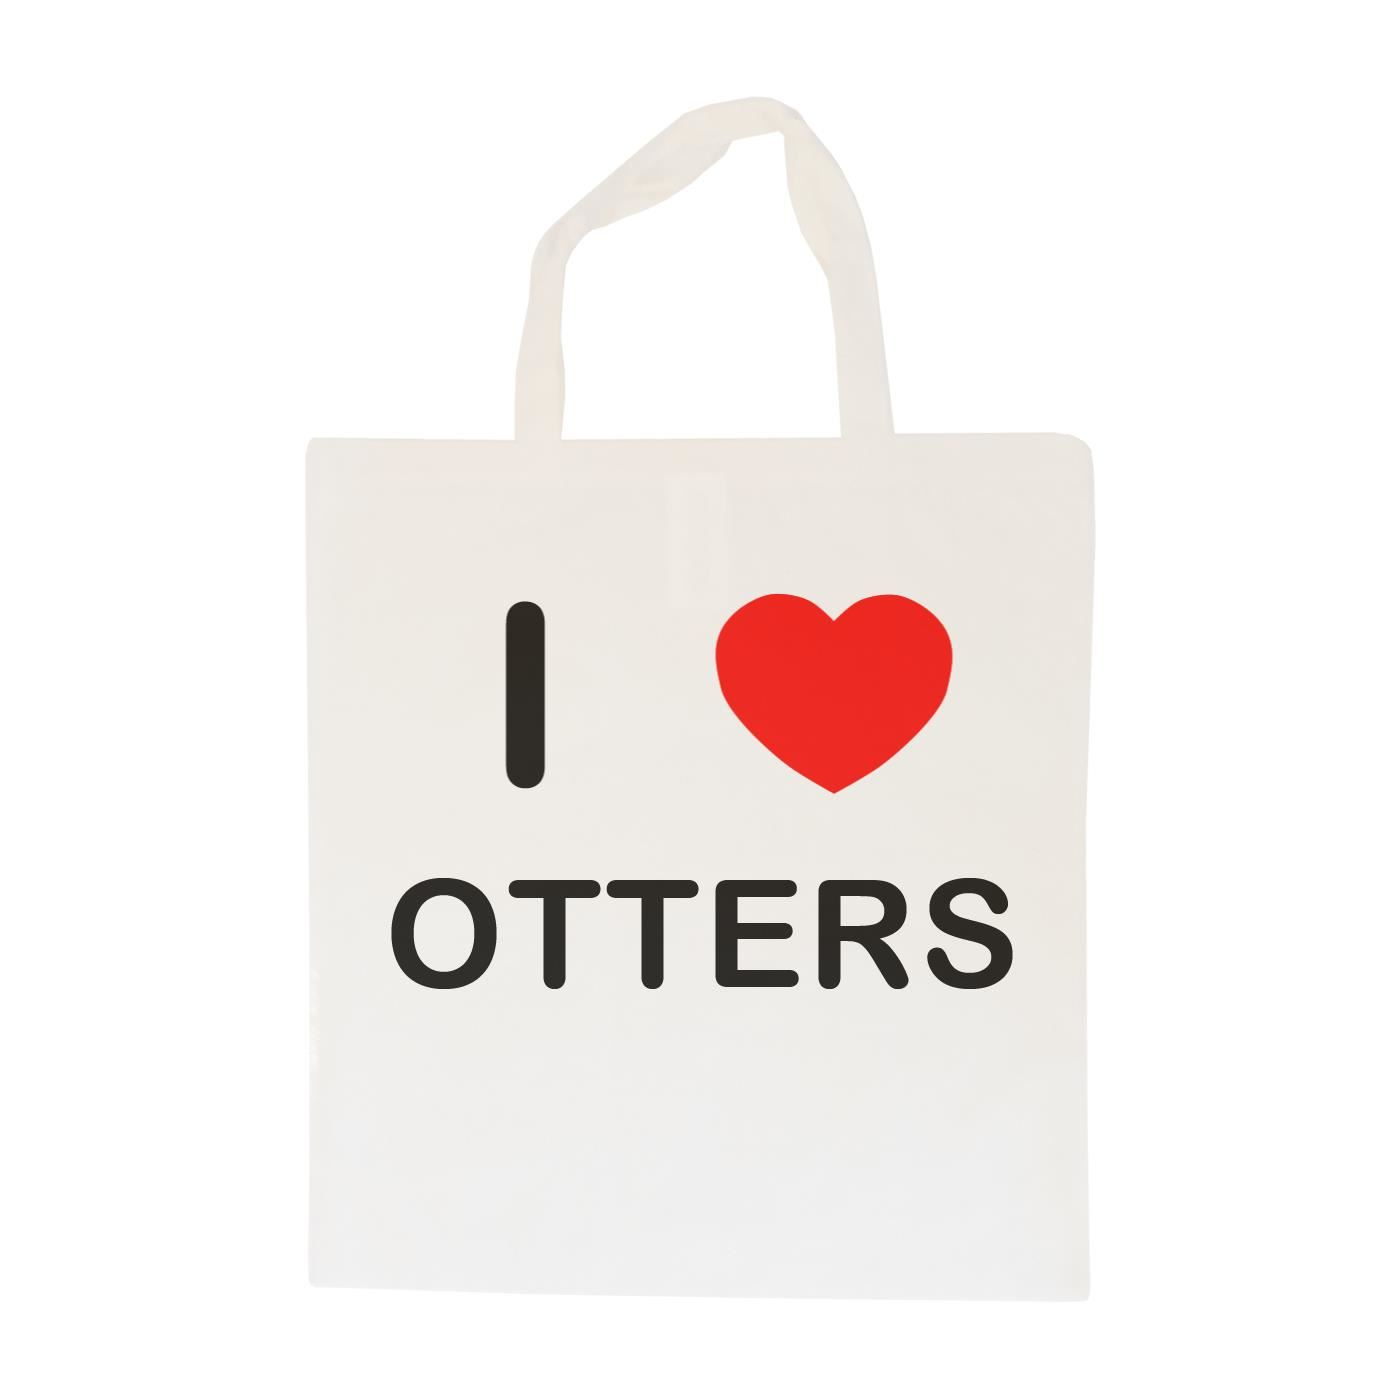 I Love Otters - Cotton Bag | Size choice Tote, Shopper or Sling